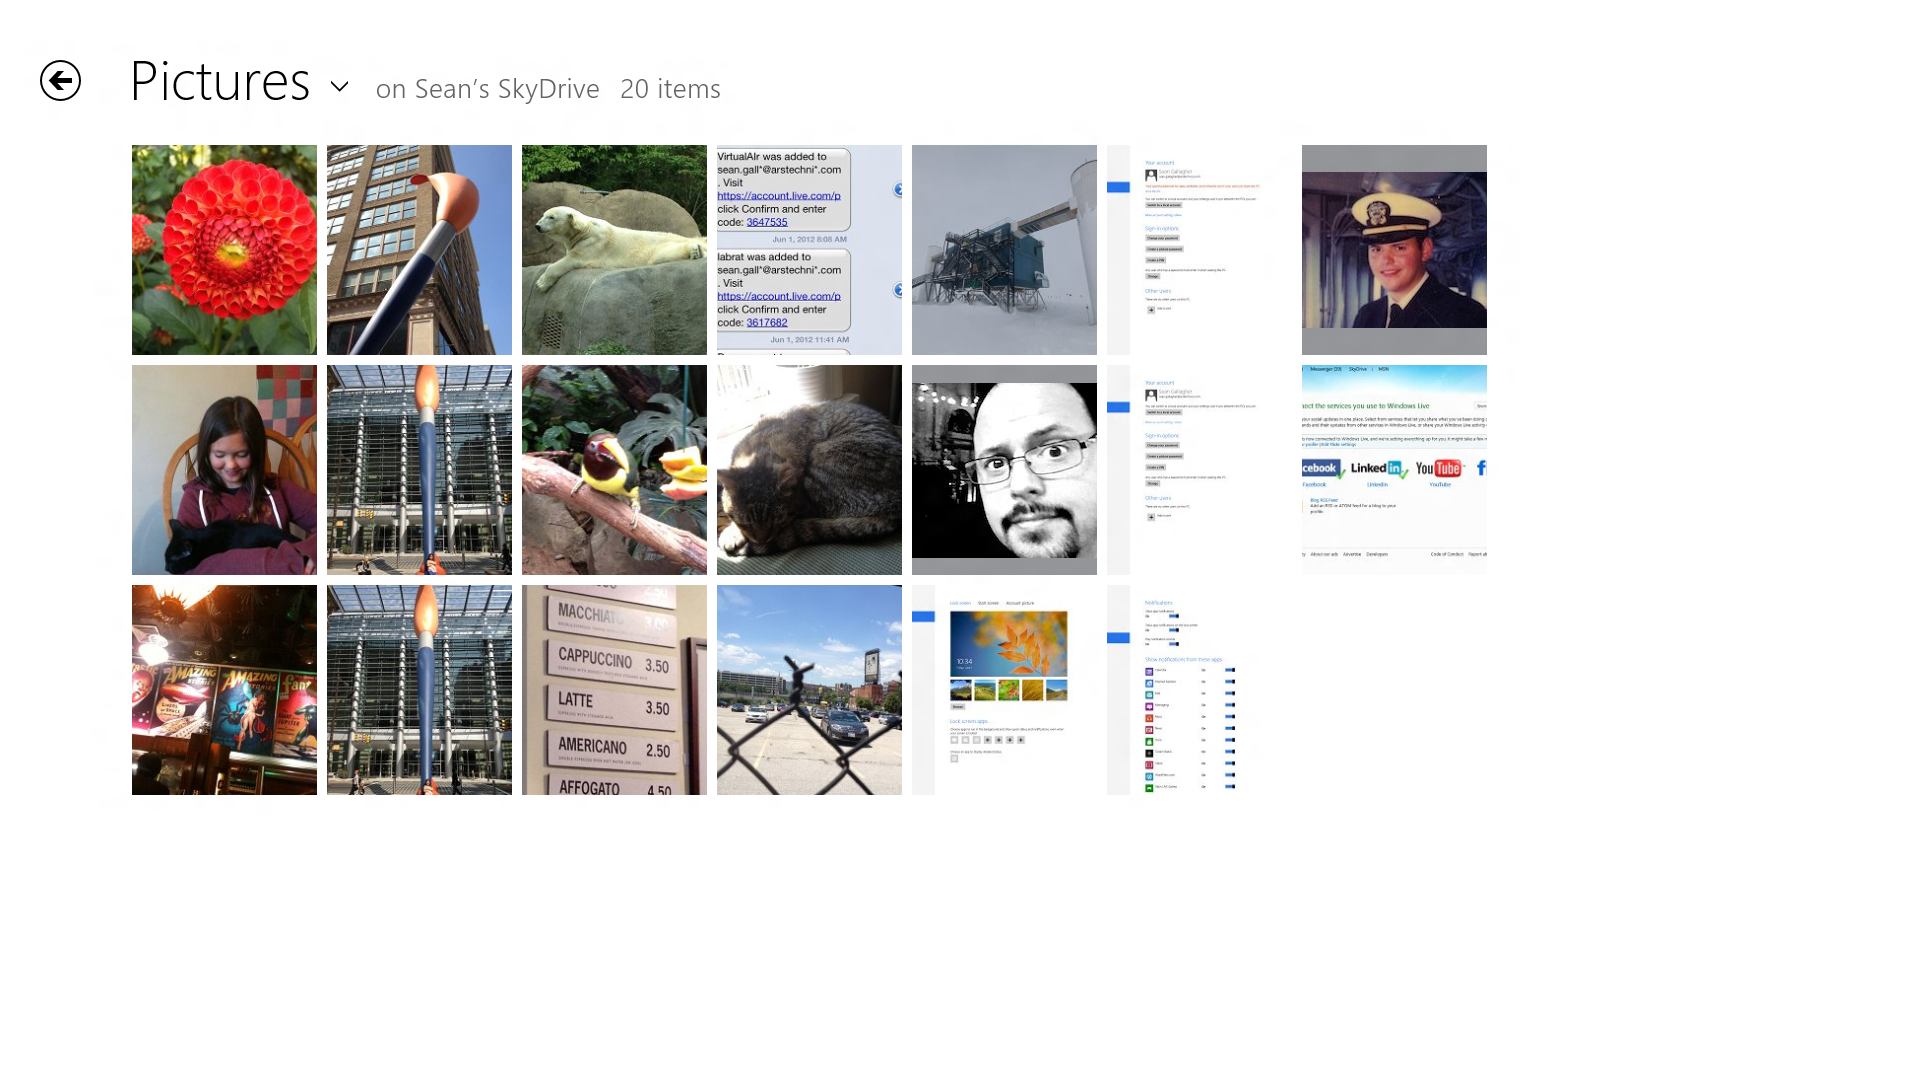 The thumbnail view in the Pictures folder. Left-clicking on an image displays it in a fullscreen view.